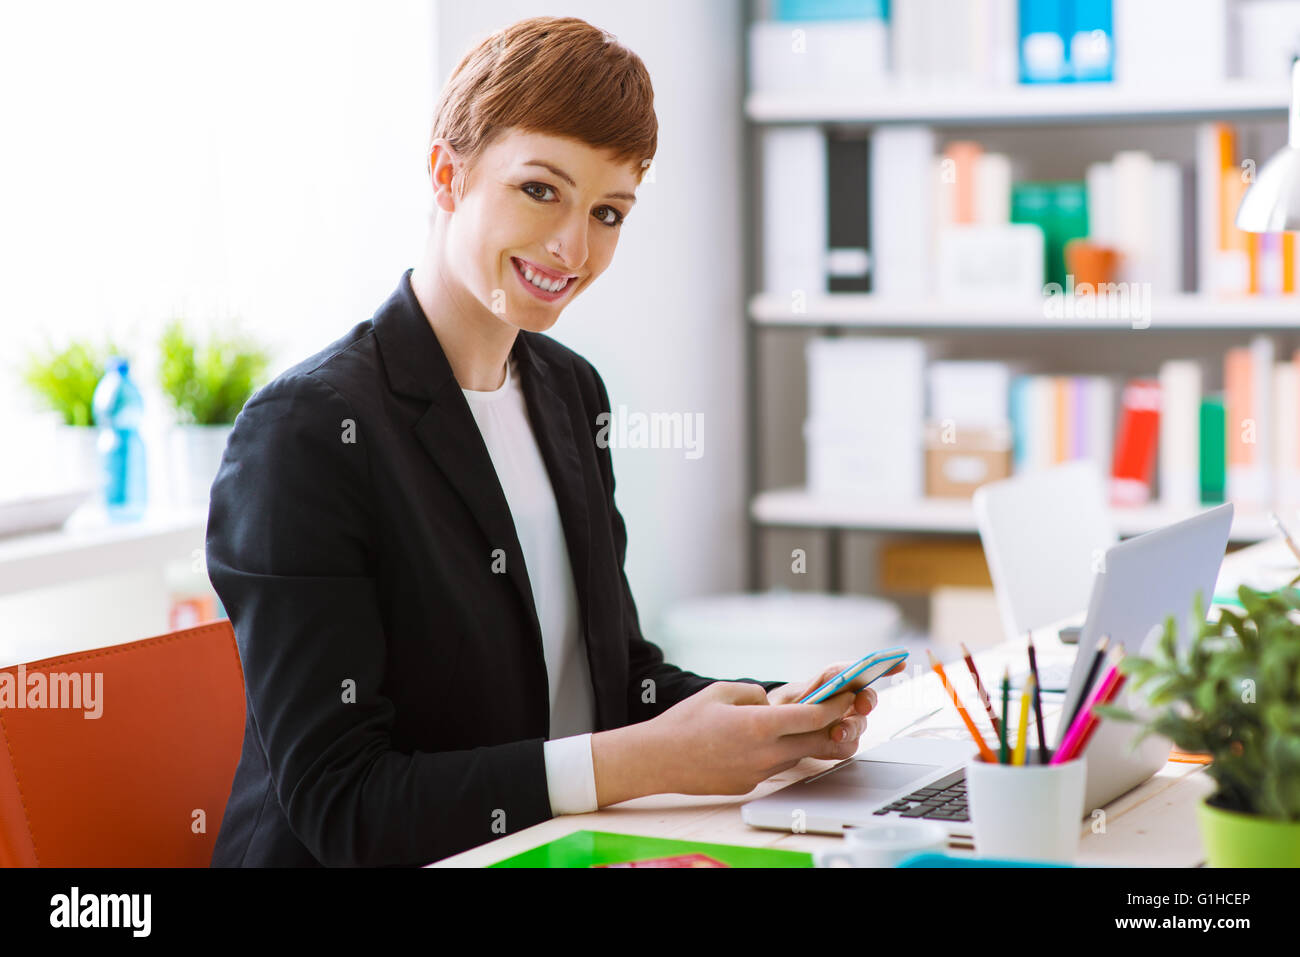 Successful confident businesswoman in her office using a smart phone, she is texting and using a mobile app - Stock Image